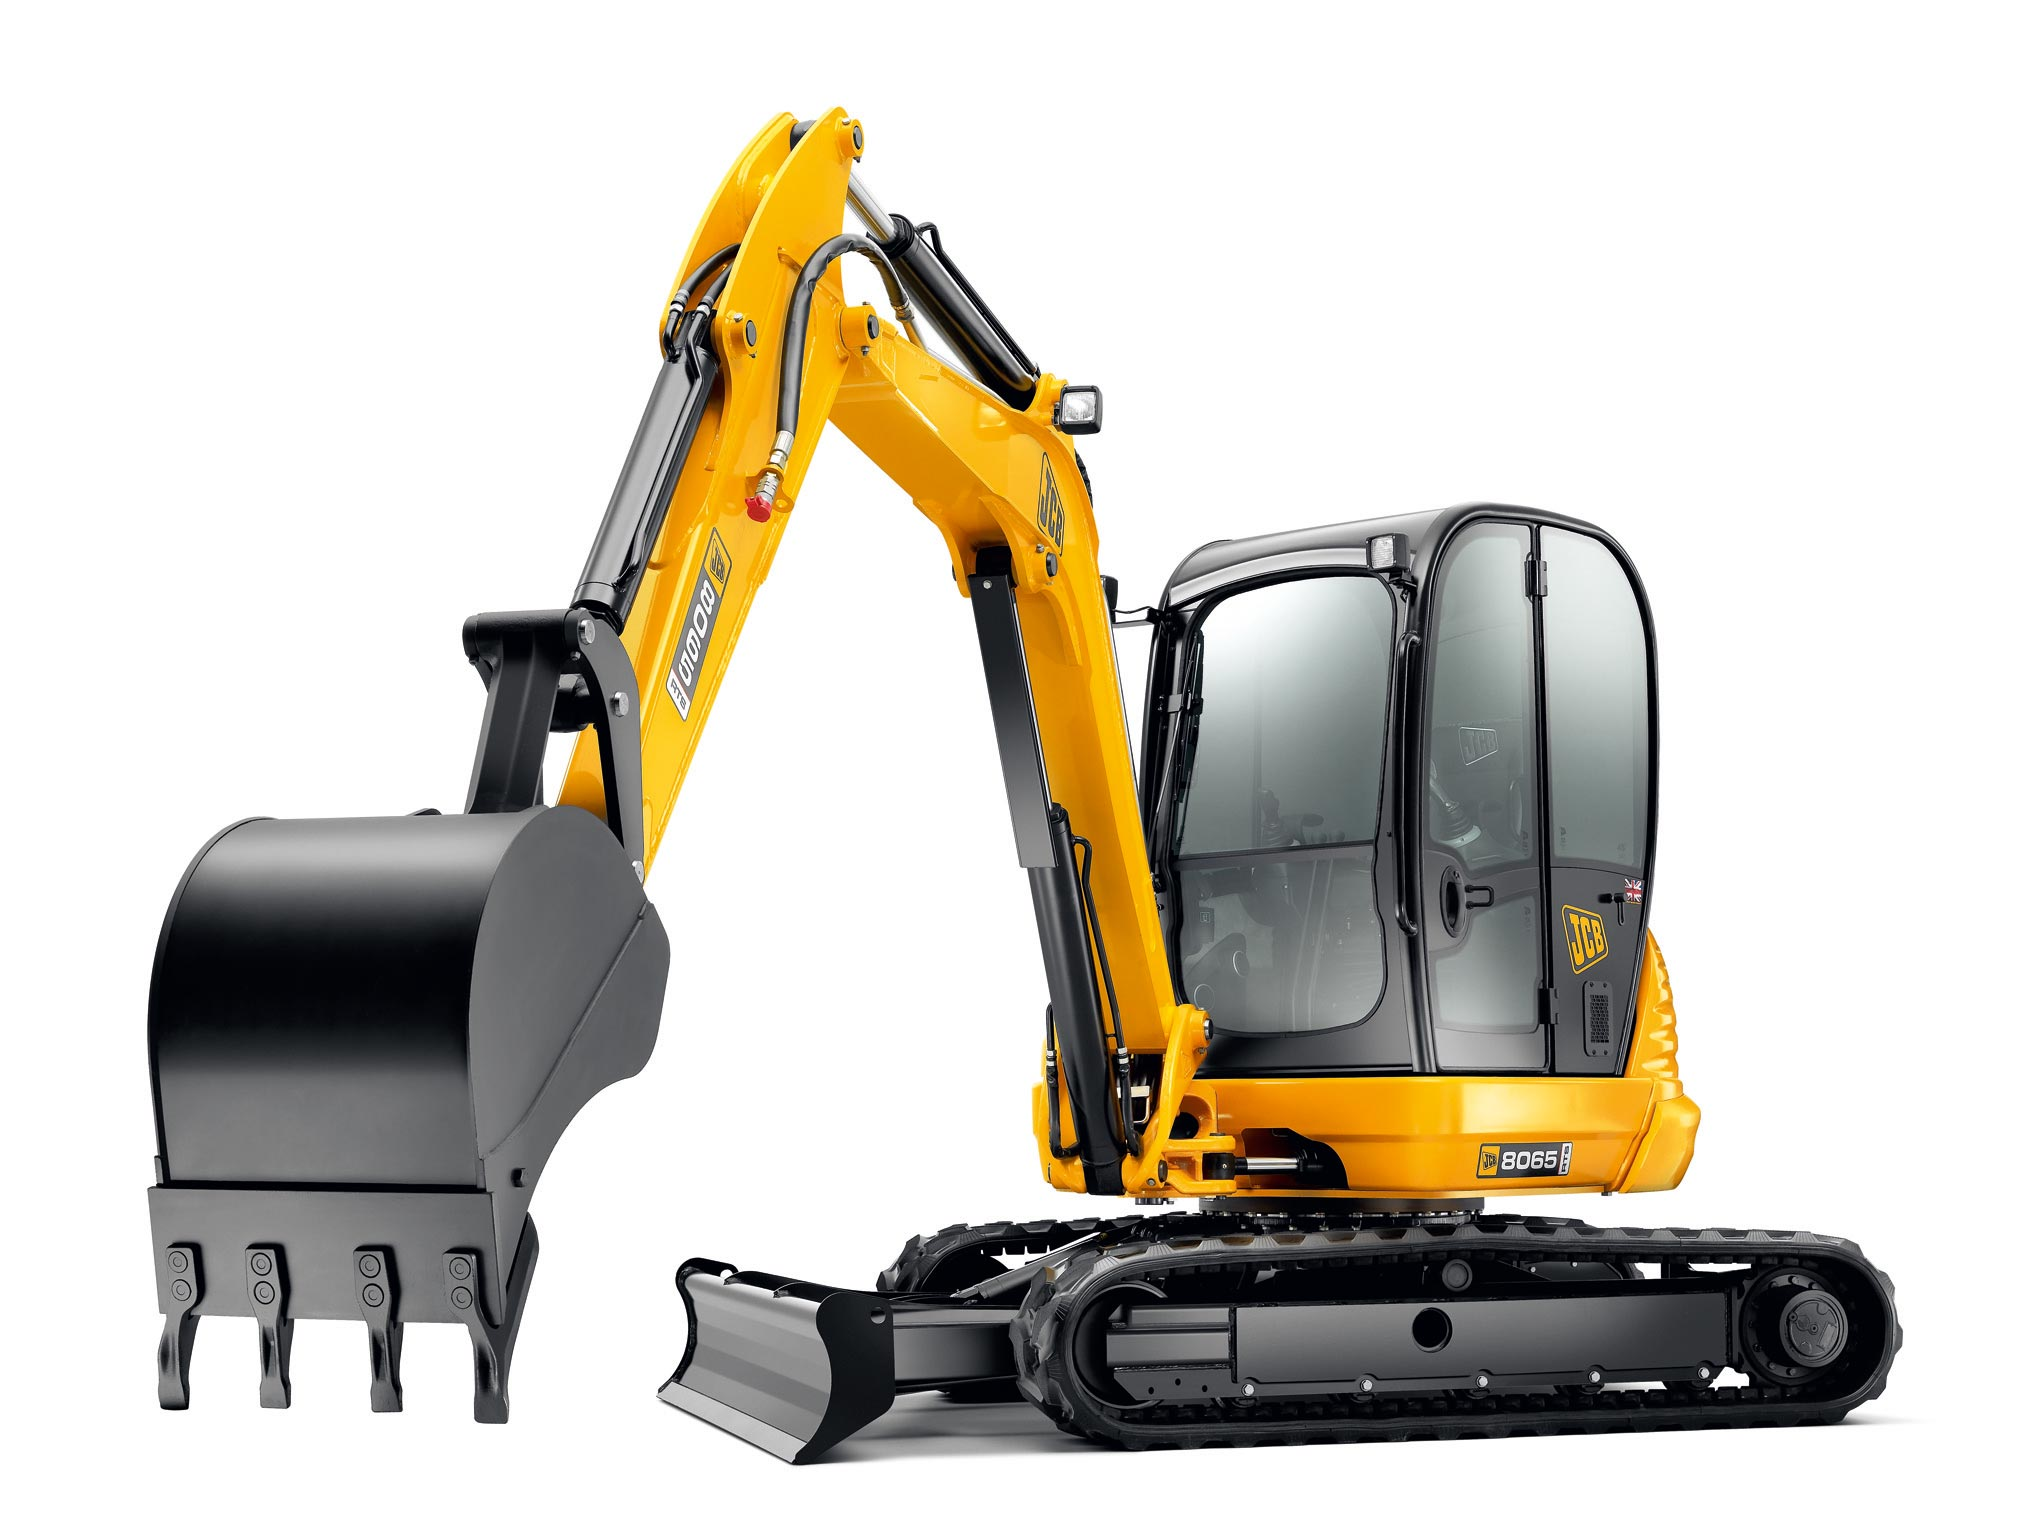 Backhoe clipart excavation. Free excavating equipment cliparts